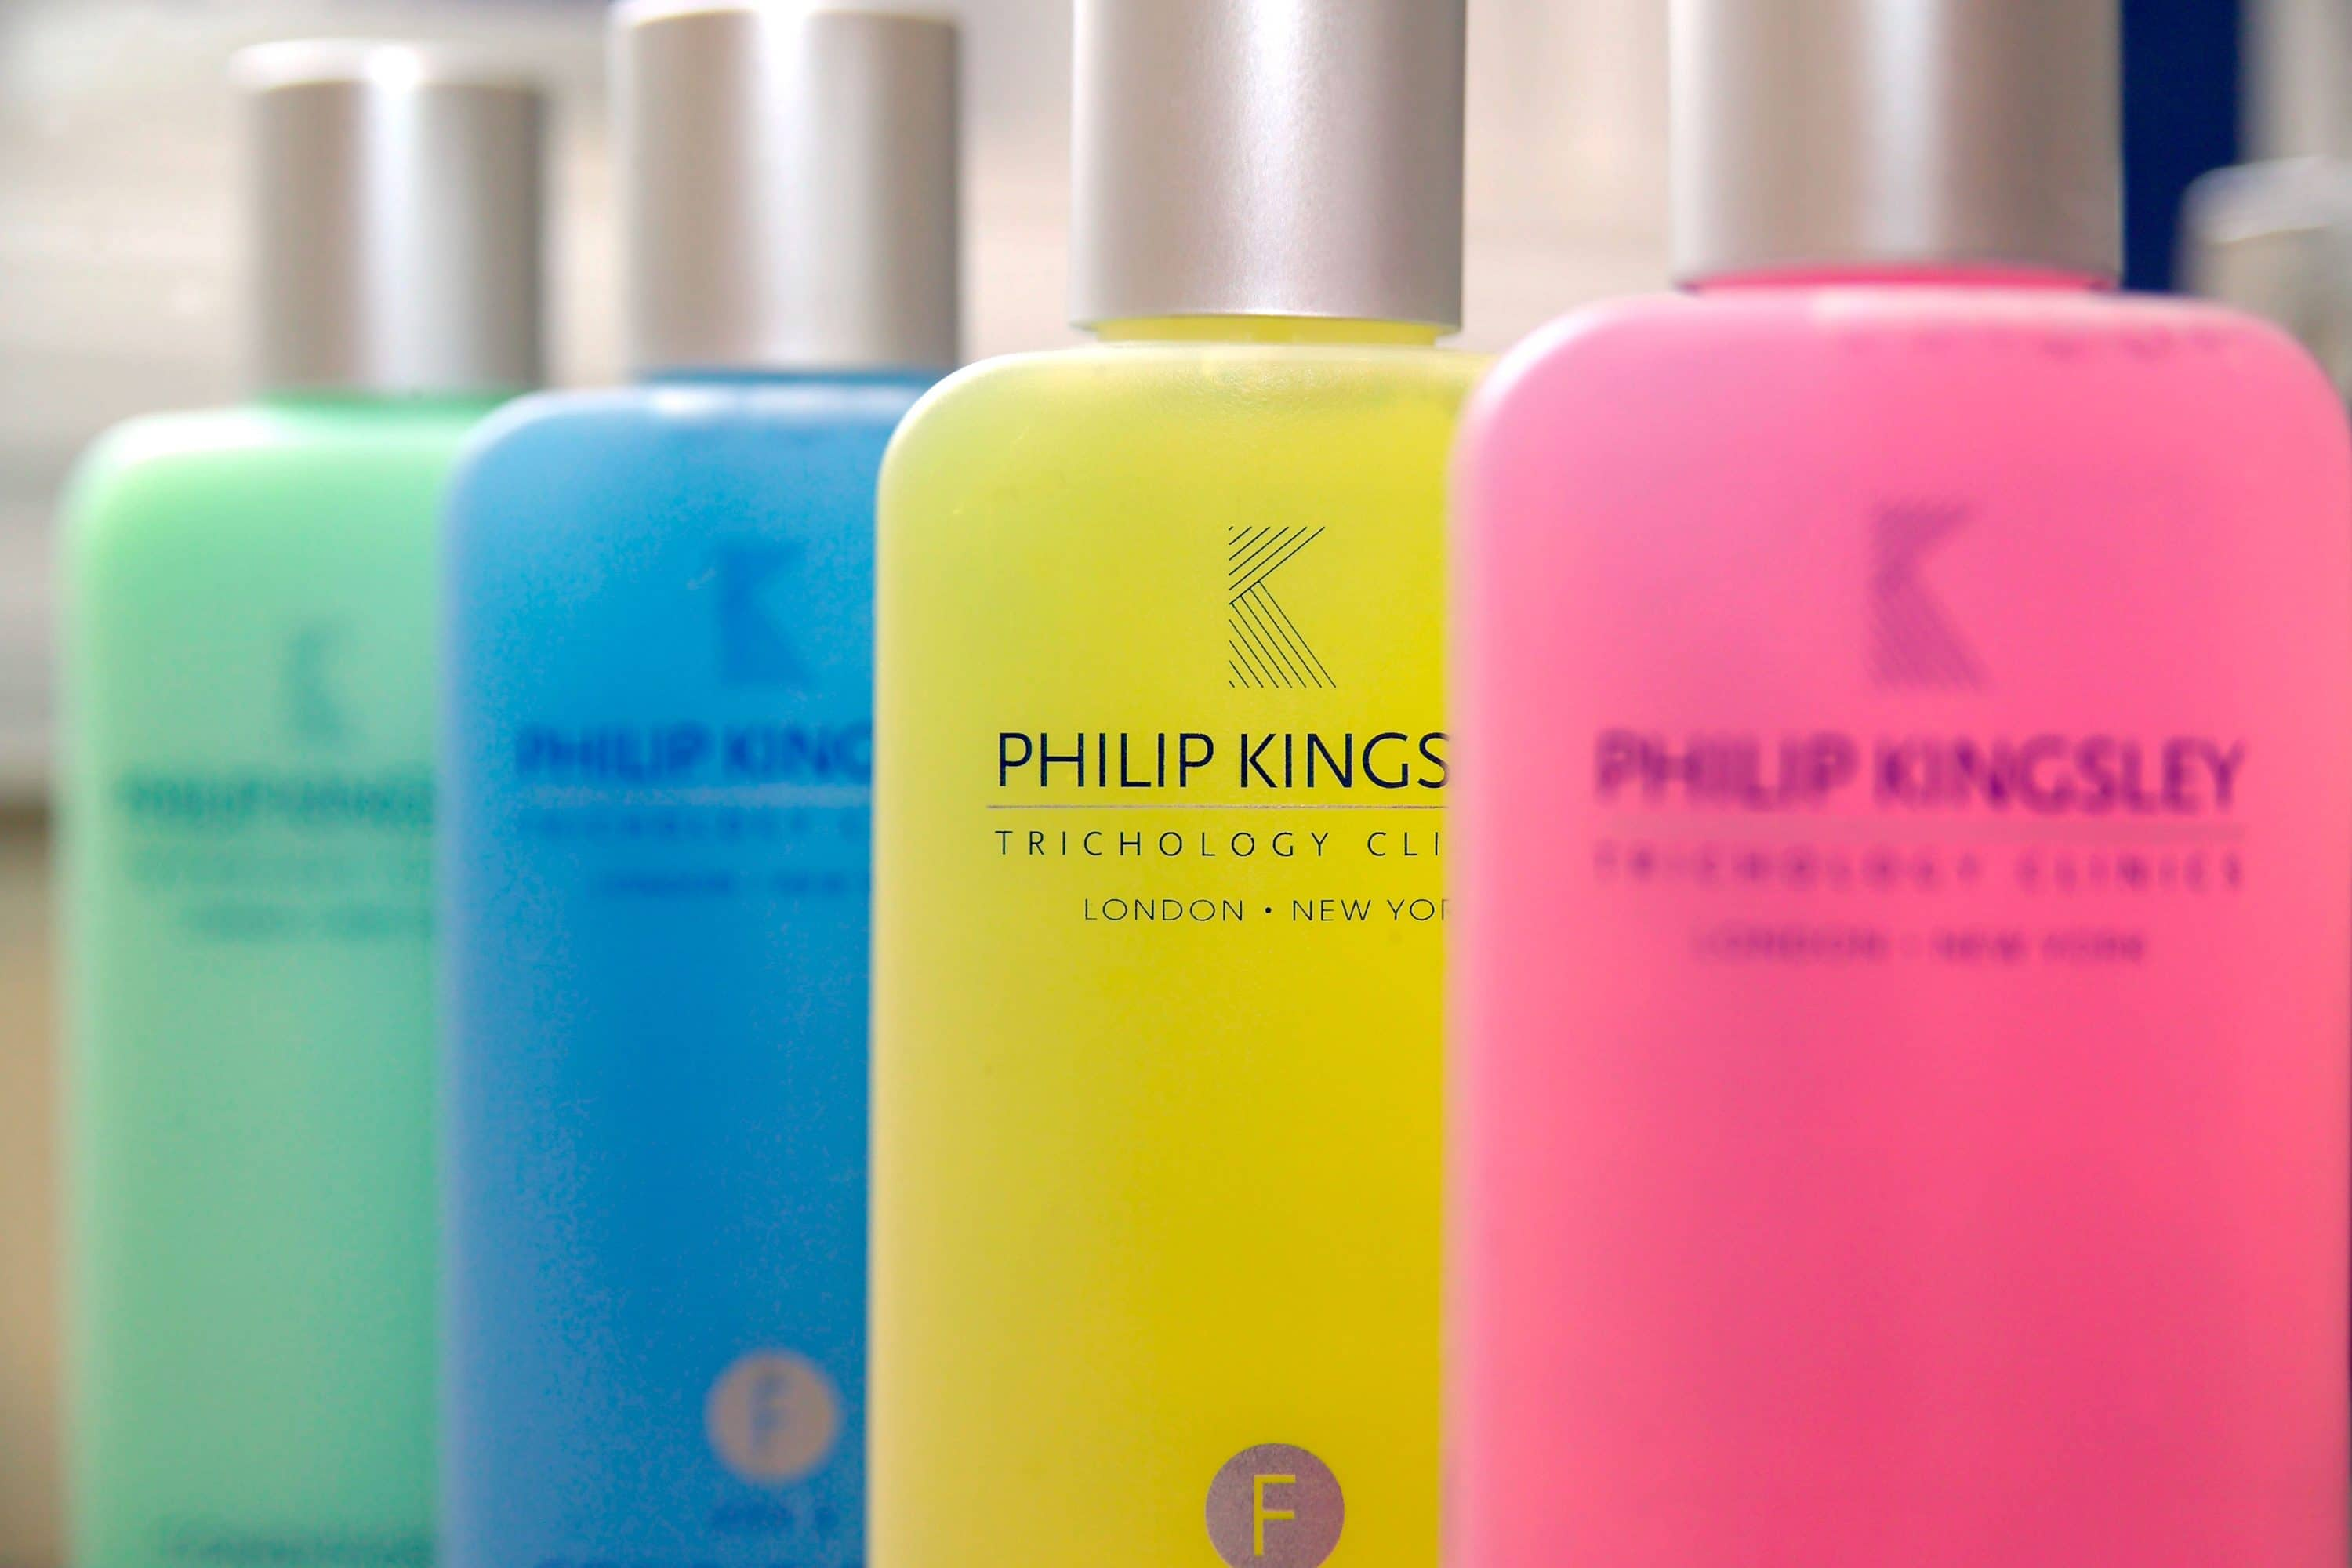 Brightly coloured Philip Kingsley haircare product bottles